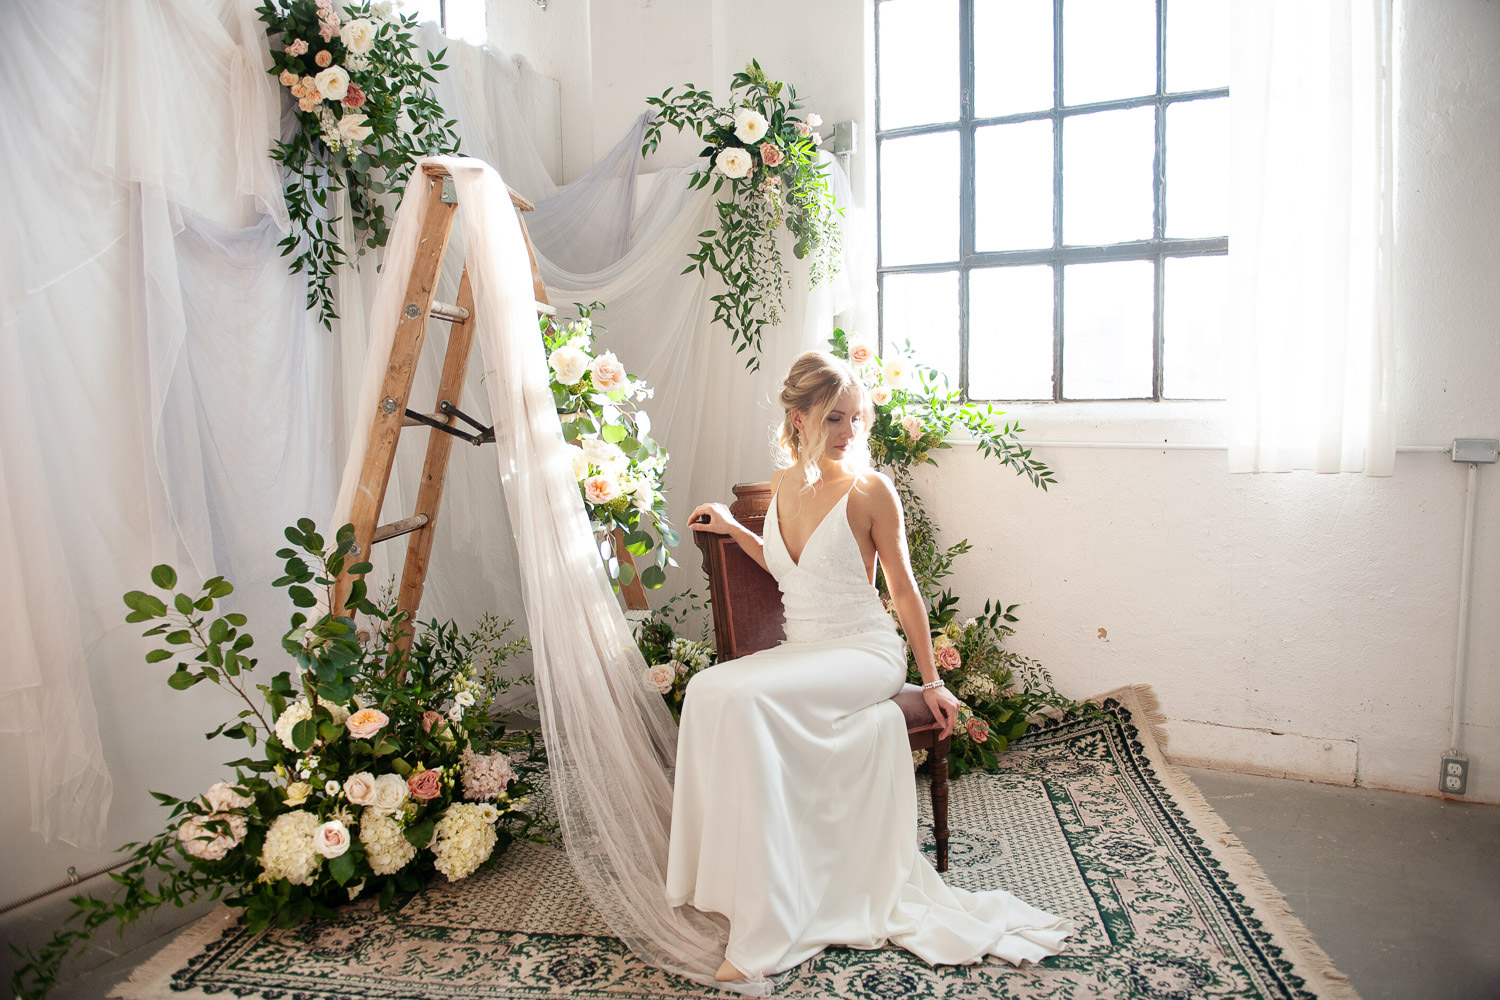 bride seated at Workshop Studios captured by Tara Whittaker Photography